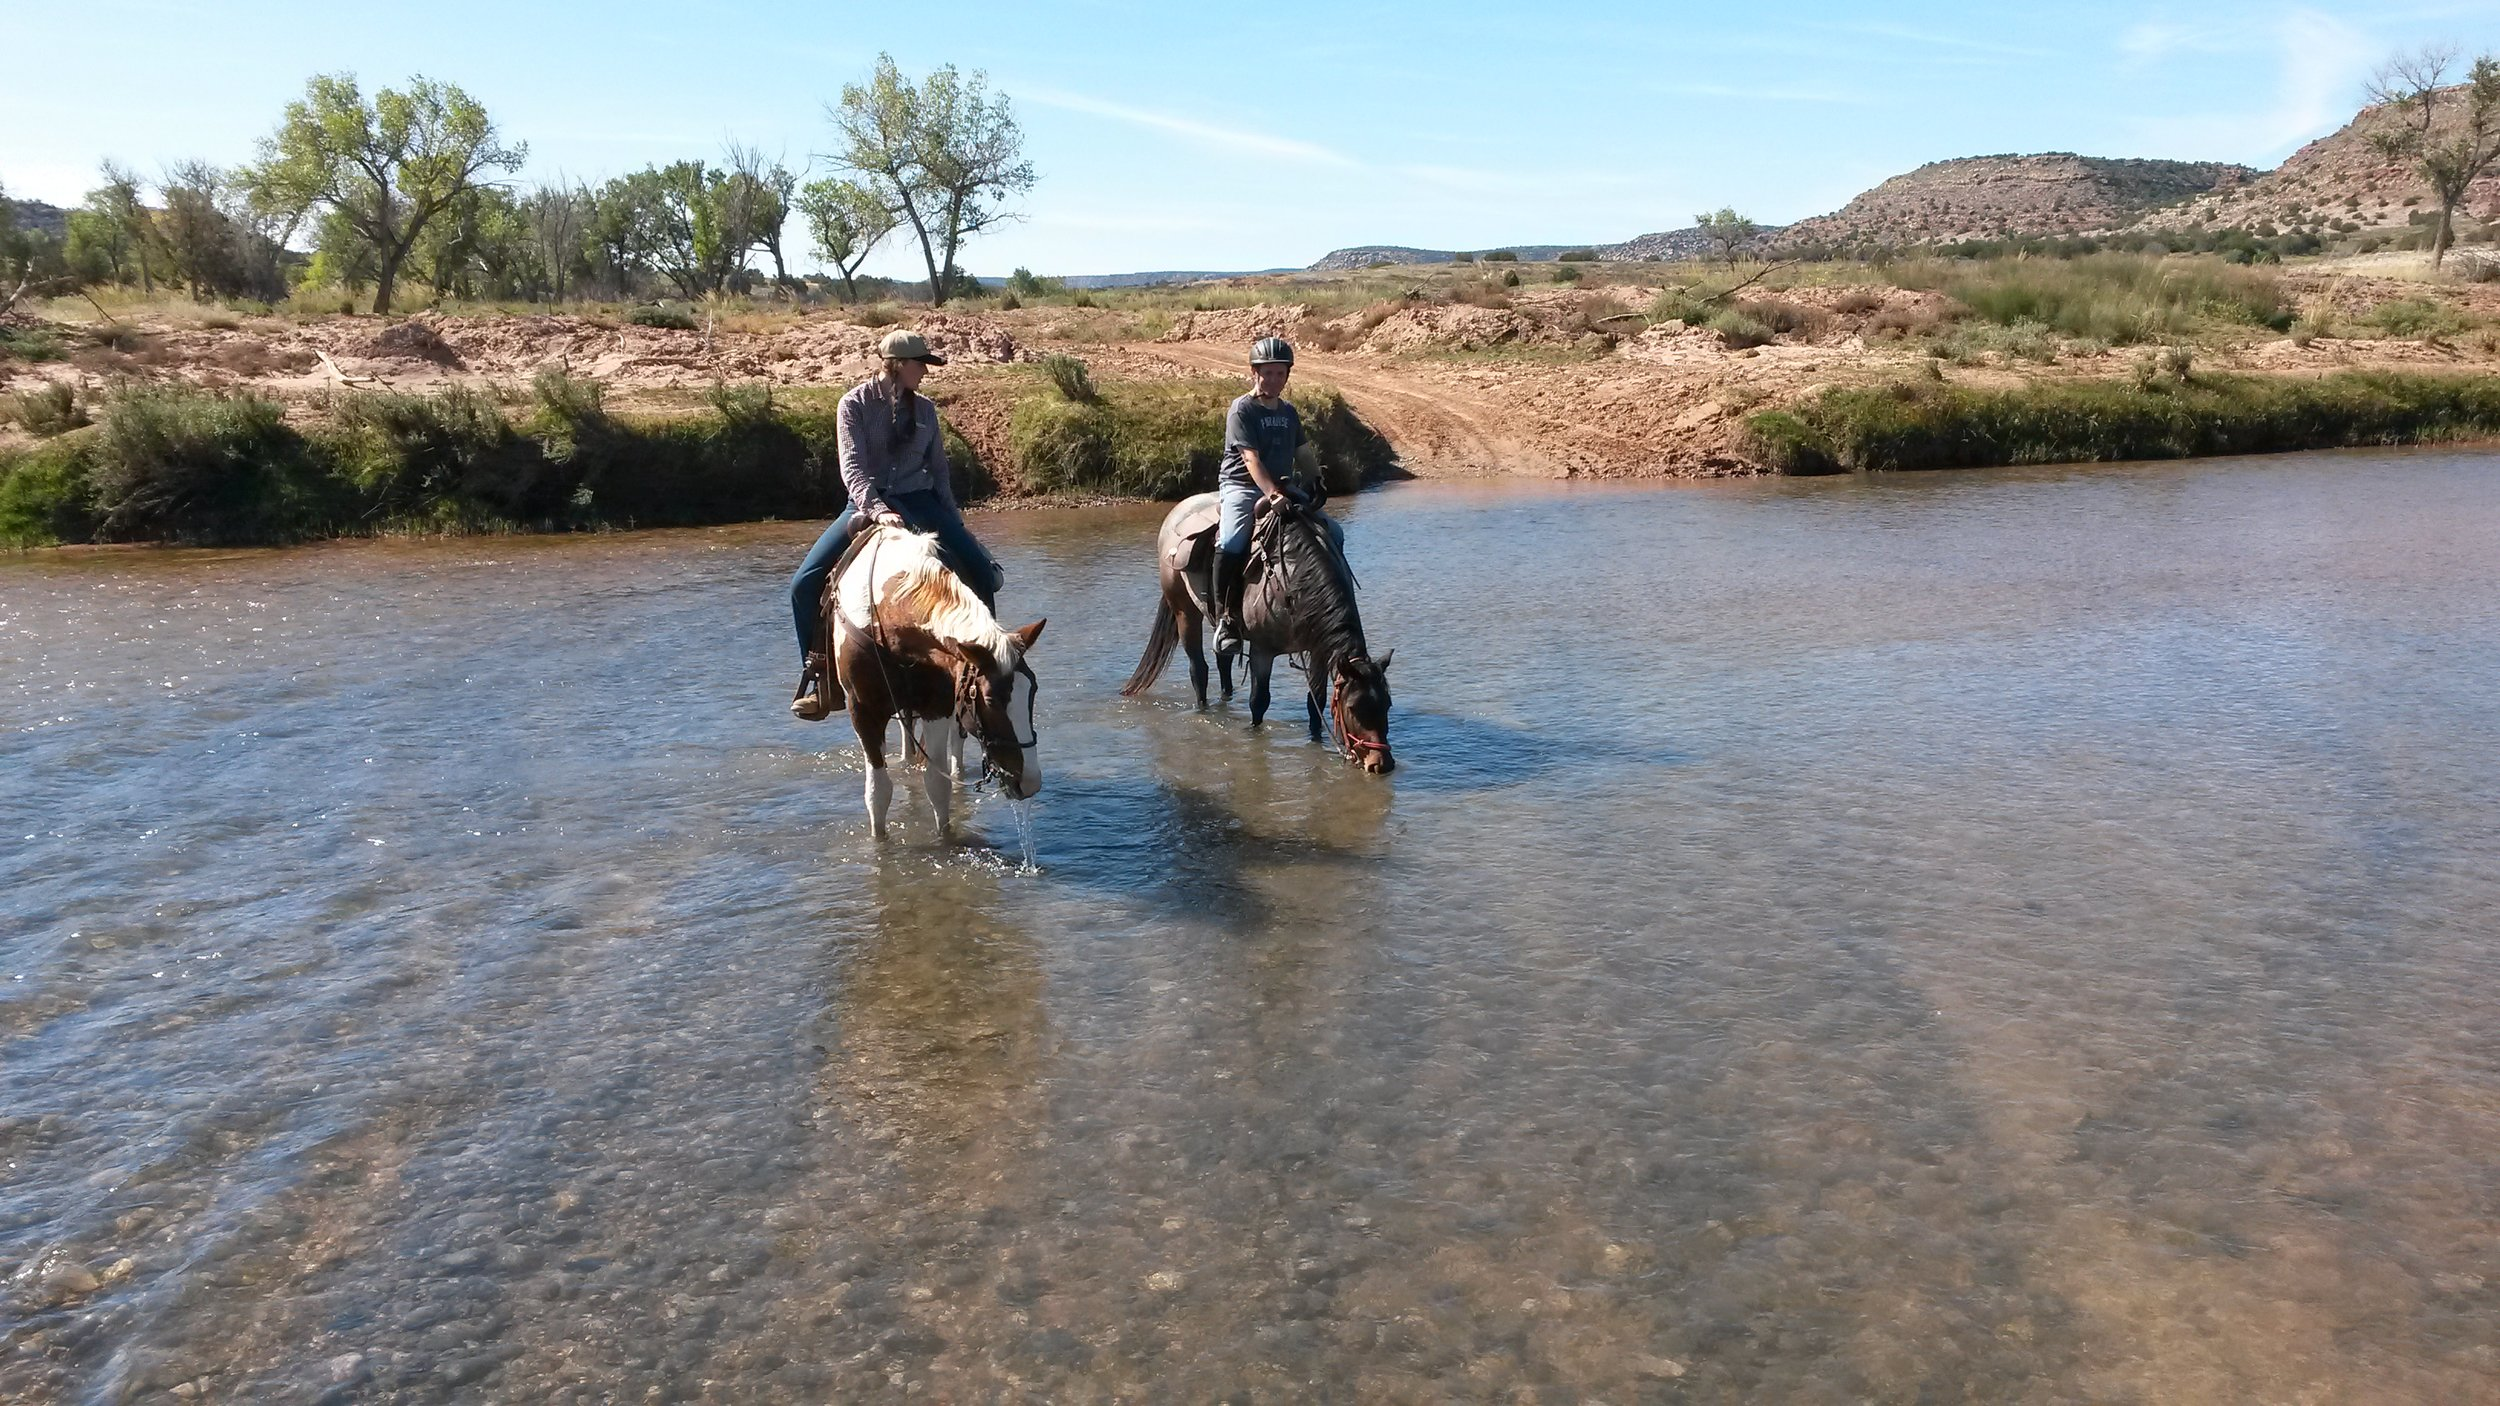 The infamous Pecos River - crystal-clear and well liked by our horses (left Melanie on Dolly, right Leo on Gus).  Der berühmt-berüchtigte Pecos River - kristallkar und sehr beliebt bei unseren Pferden (links Melanie auf Dolly, rechts Leo auf Gus).